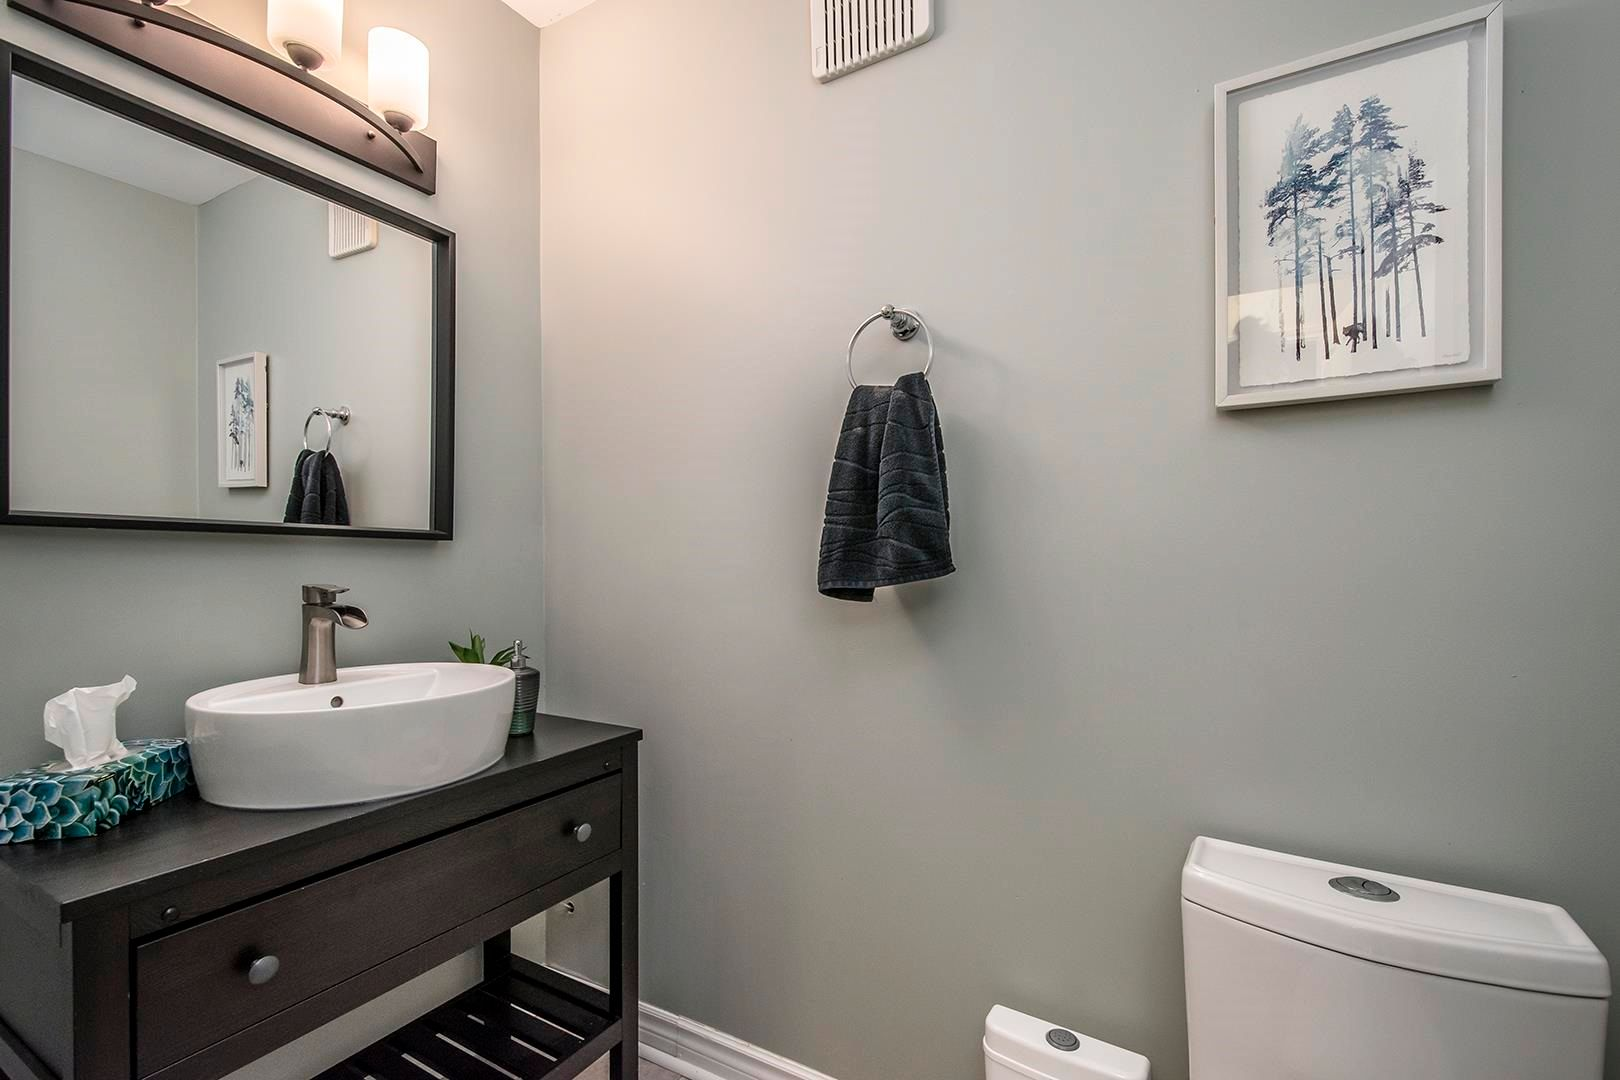 Photo 14: Photos: 64 Roy Crescent in Bedford: 20-Bedford Residential for sale (Halifax-Dartmouth)  : MLS®# 202110846